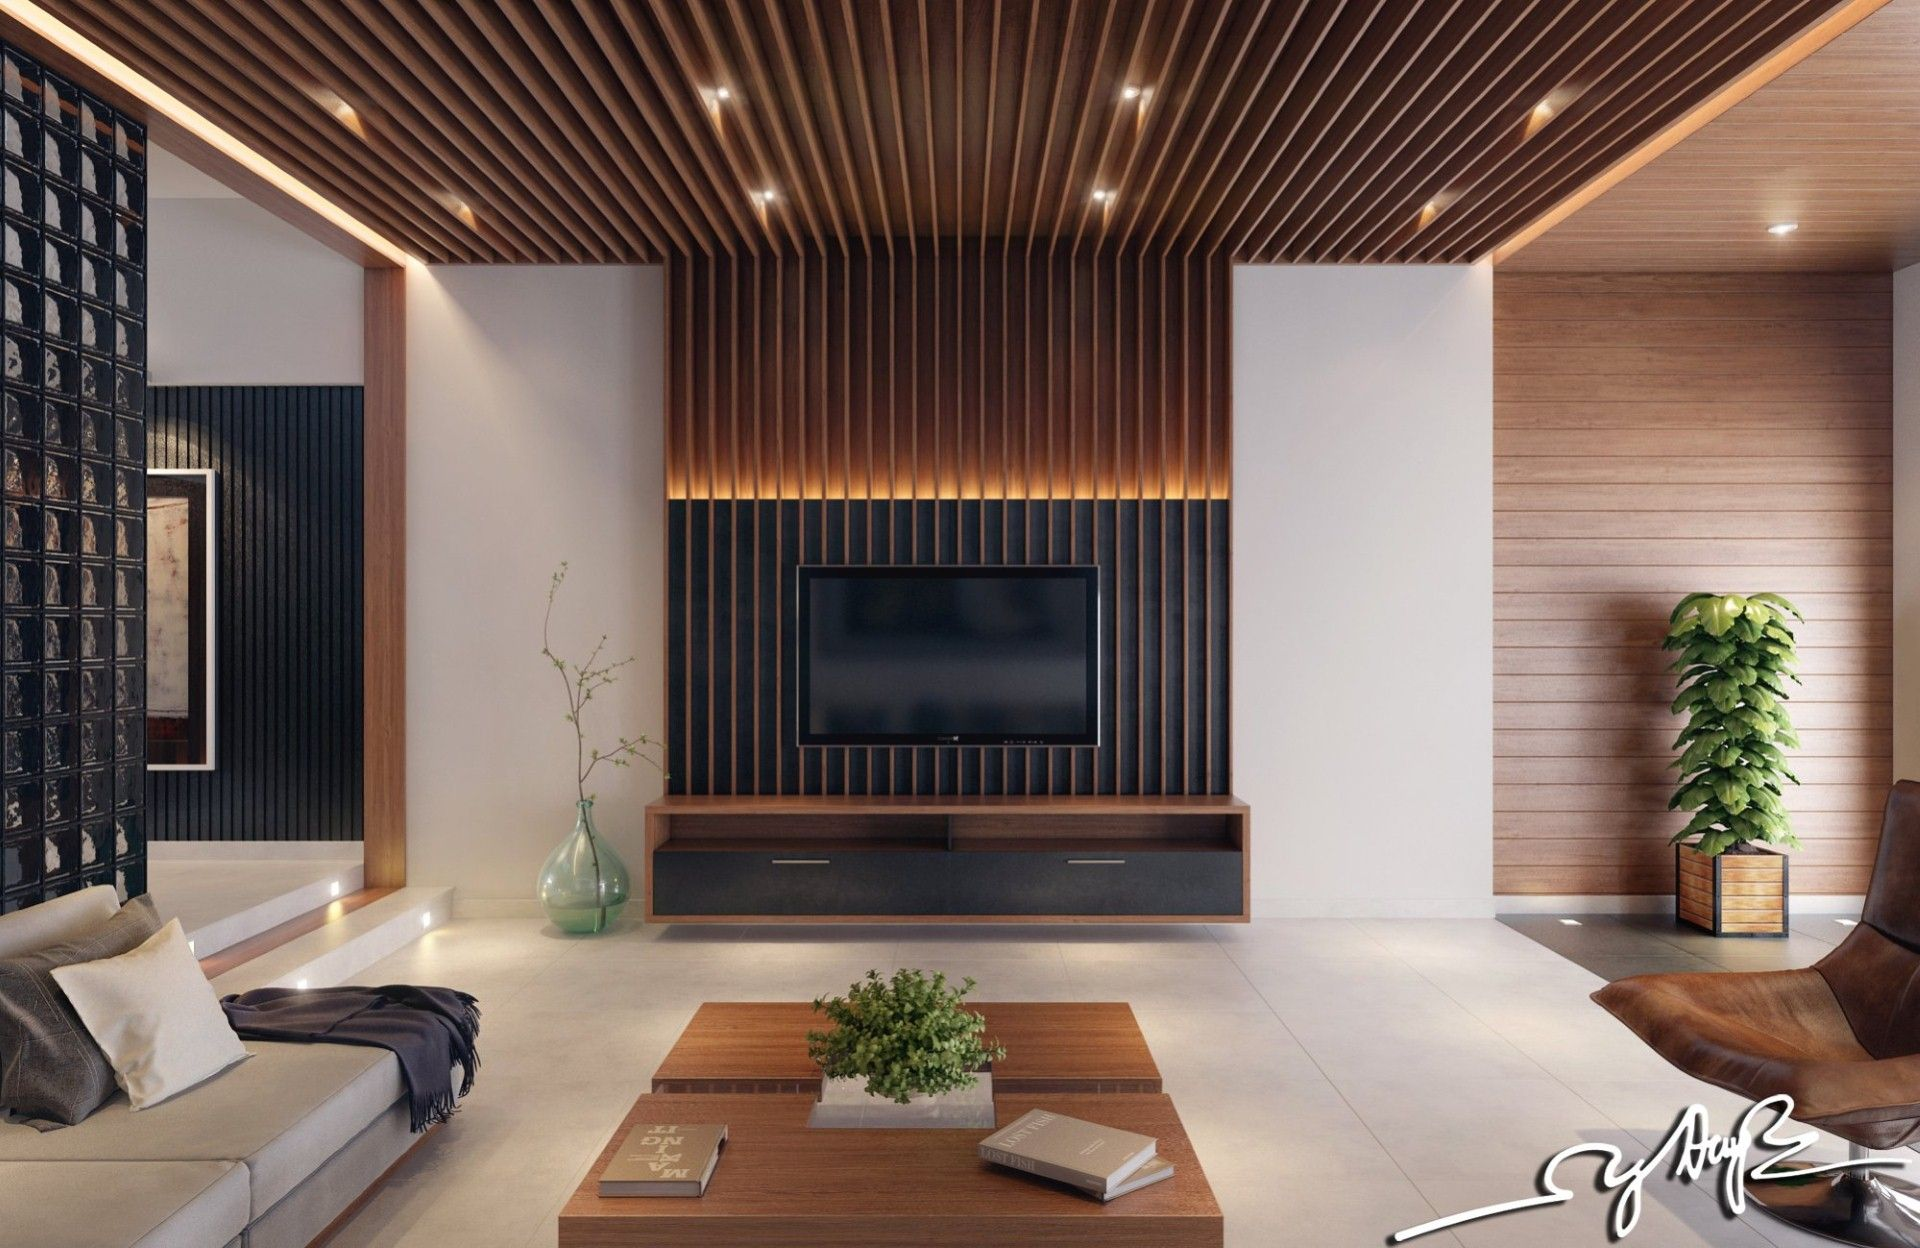 Surprising Wooden Wall Designs Living Room 46 In Trends Design Ideas with Wooden  Wall Designs Living